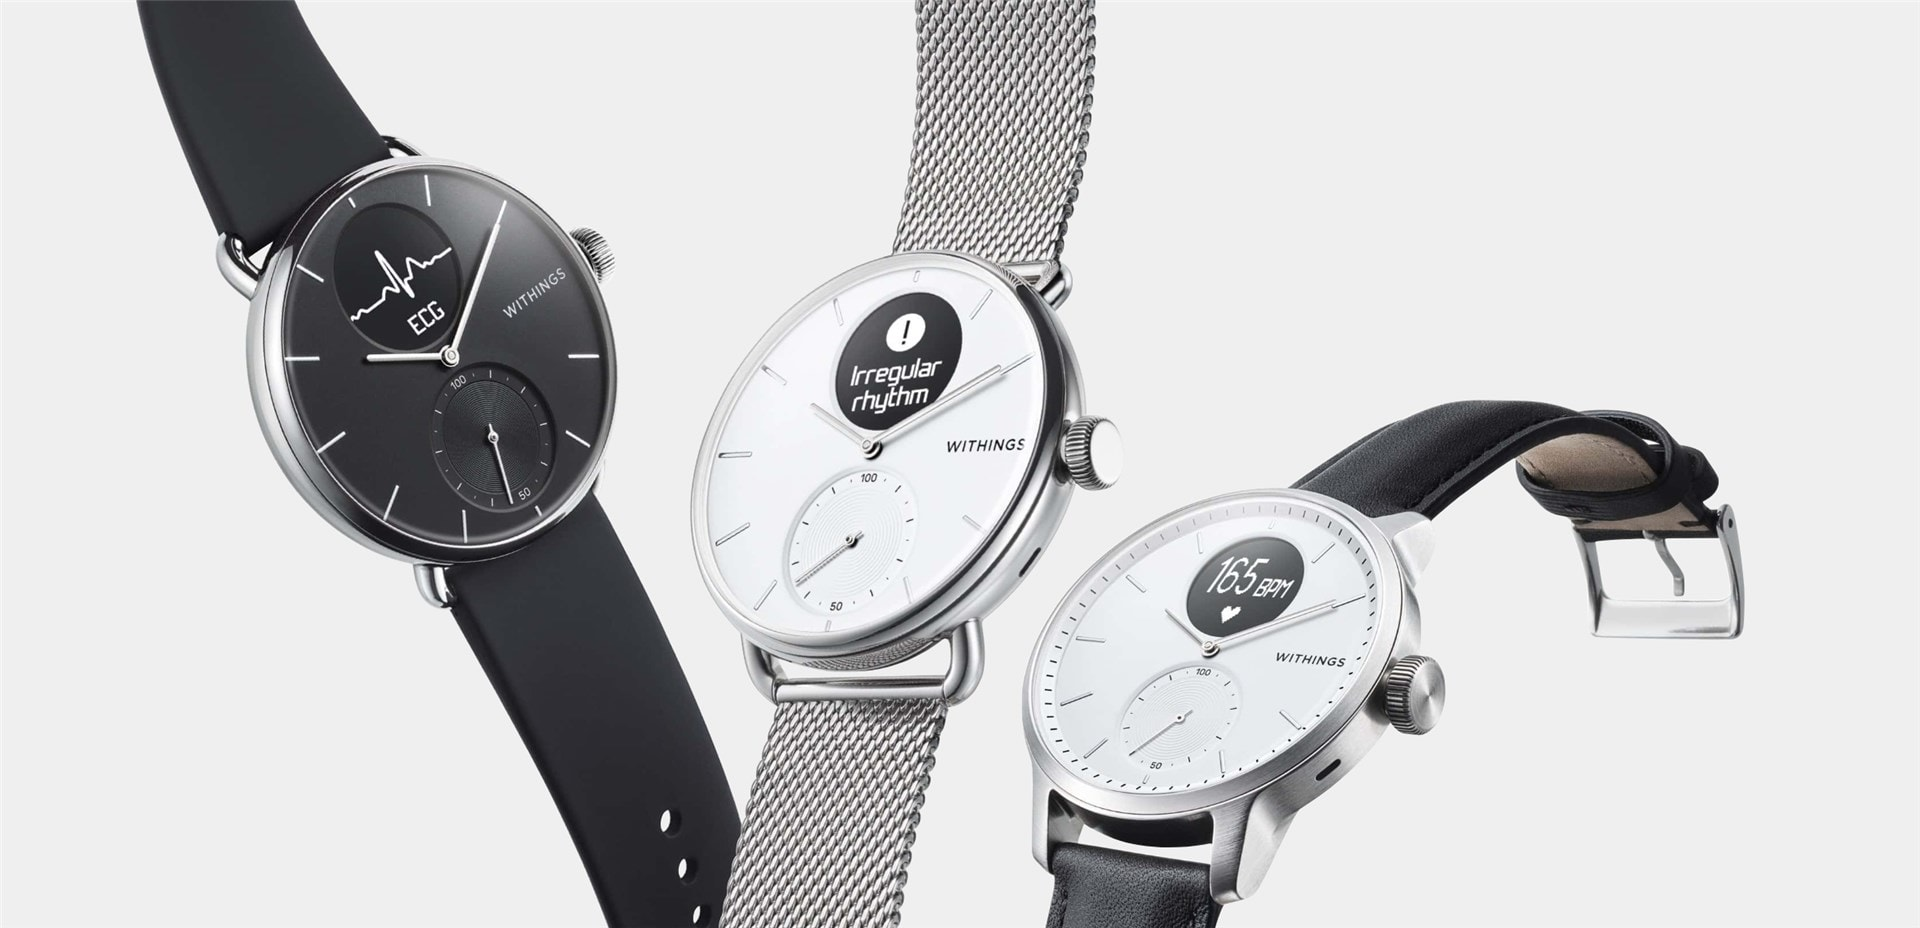 First smartwatch with medical-grade Electrocardiogram and Sleep Apnea detection from Withings